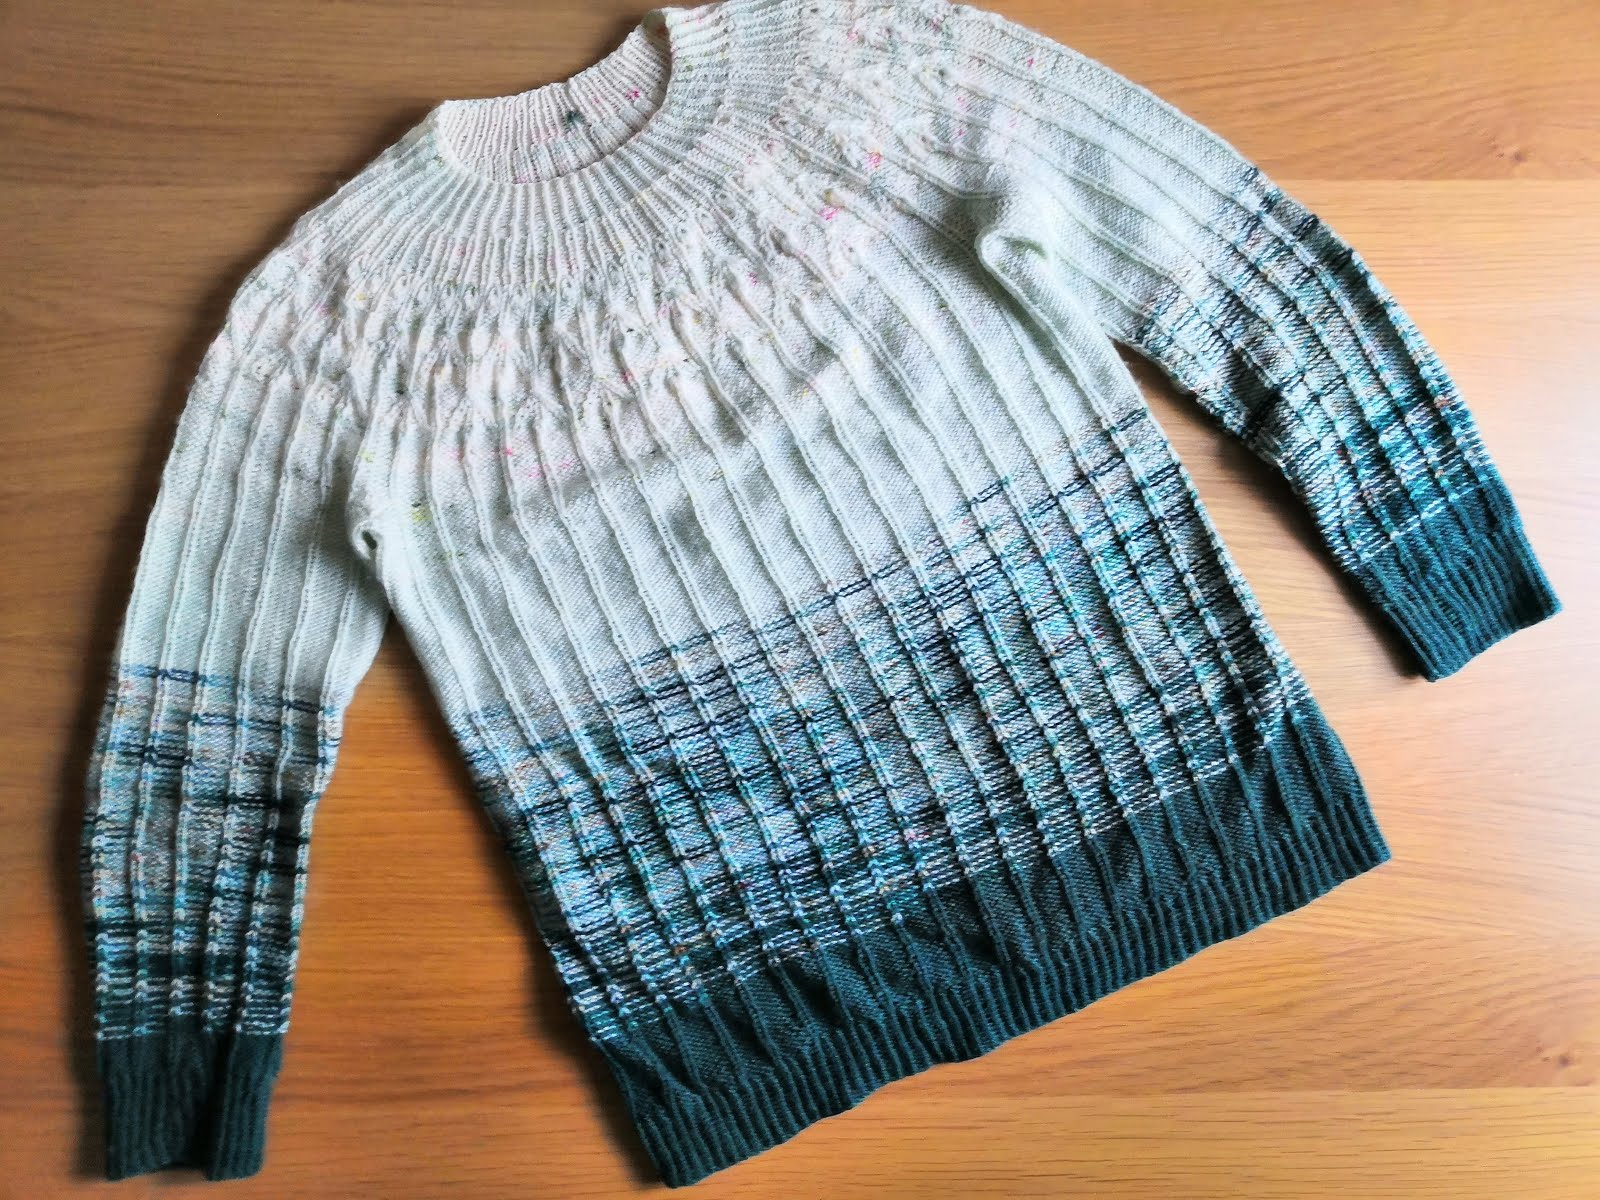 Review of Joji Locatelli Spector Sweater